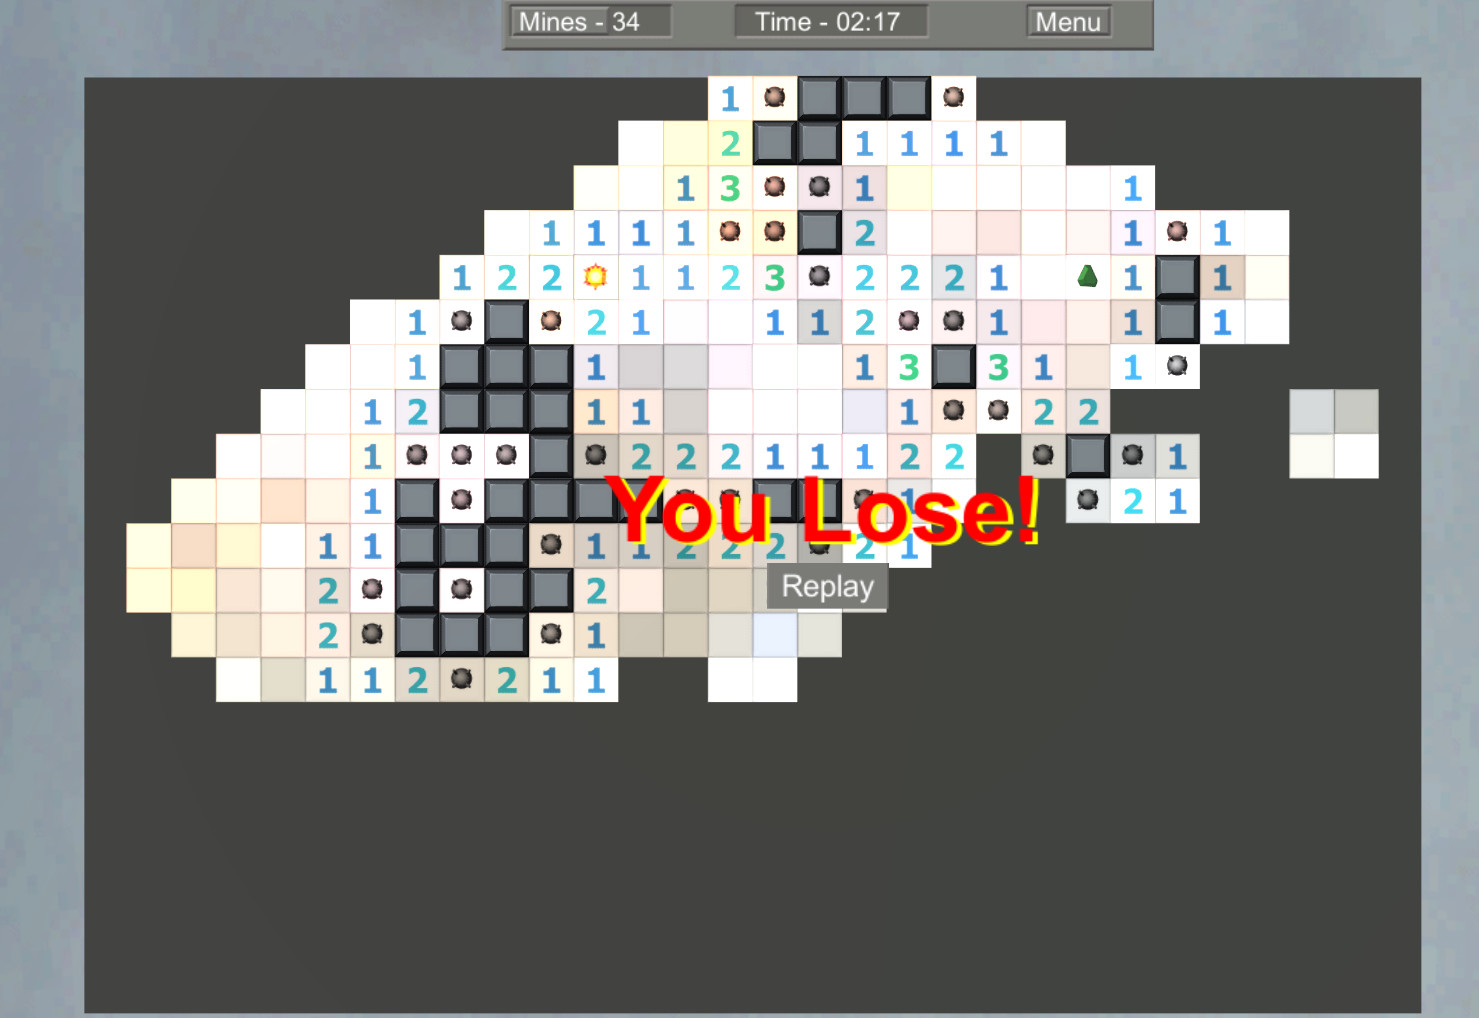 Super Minesweeper attACK on Steam